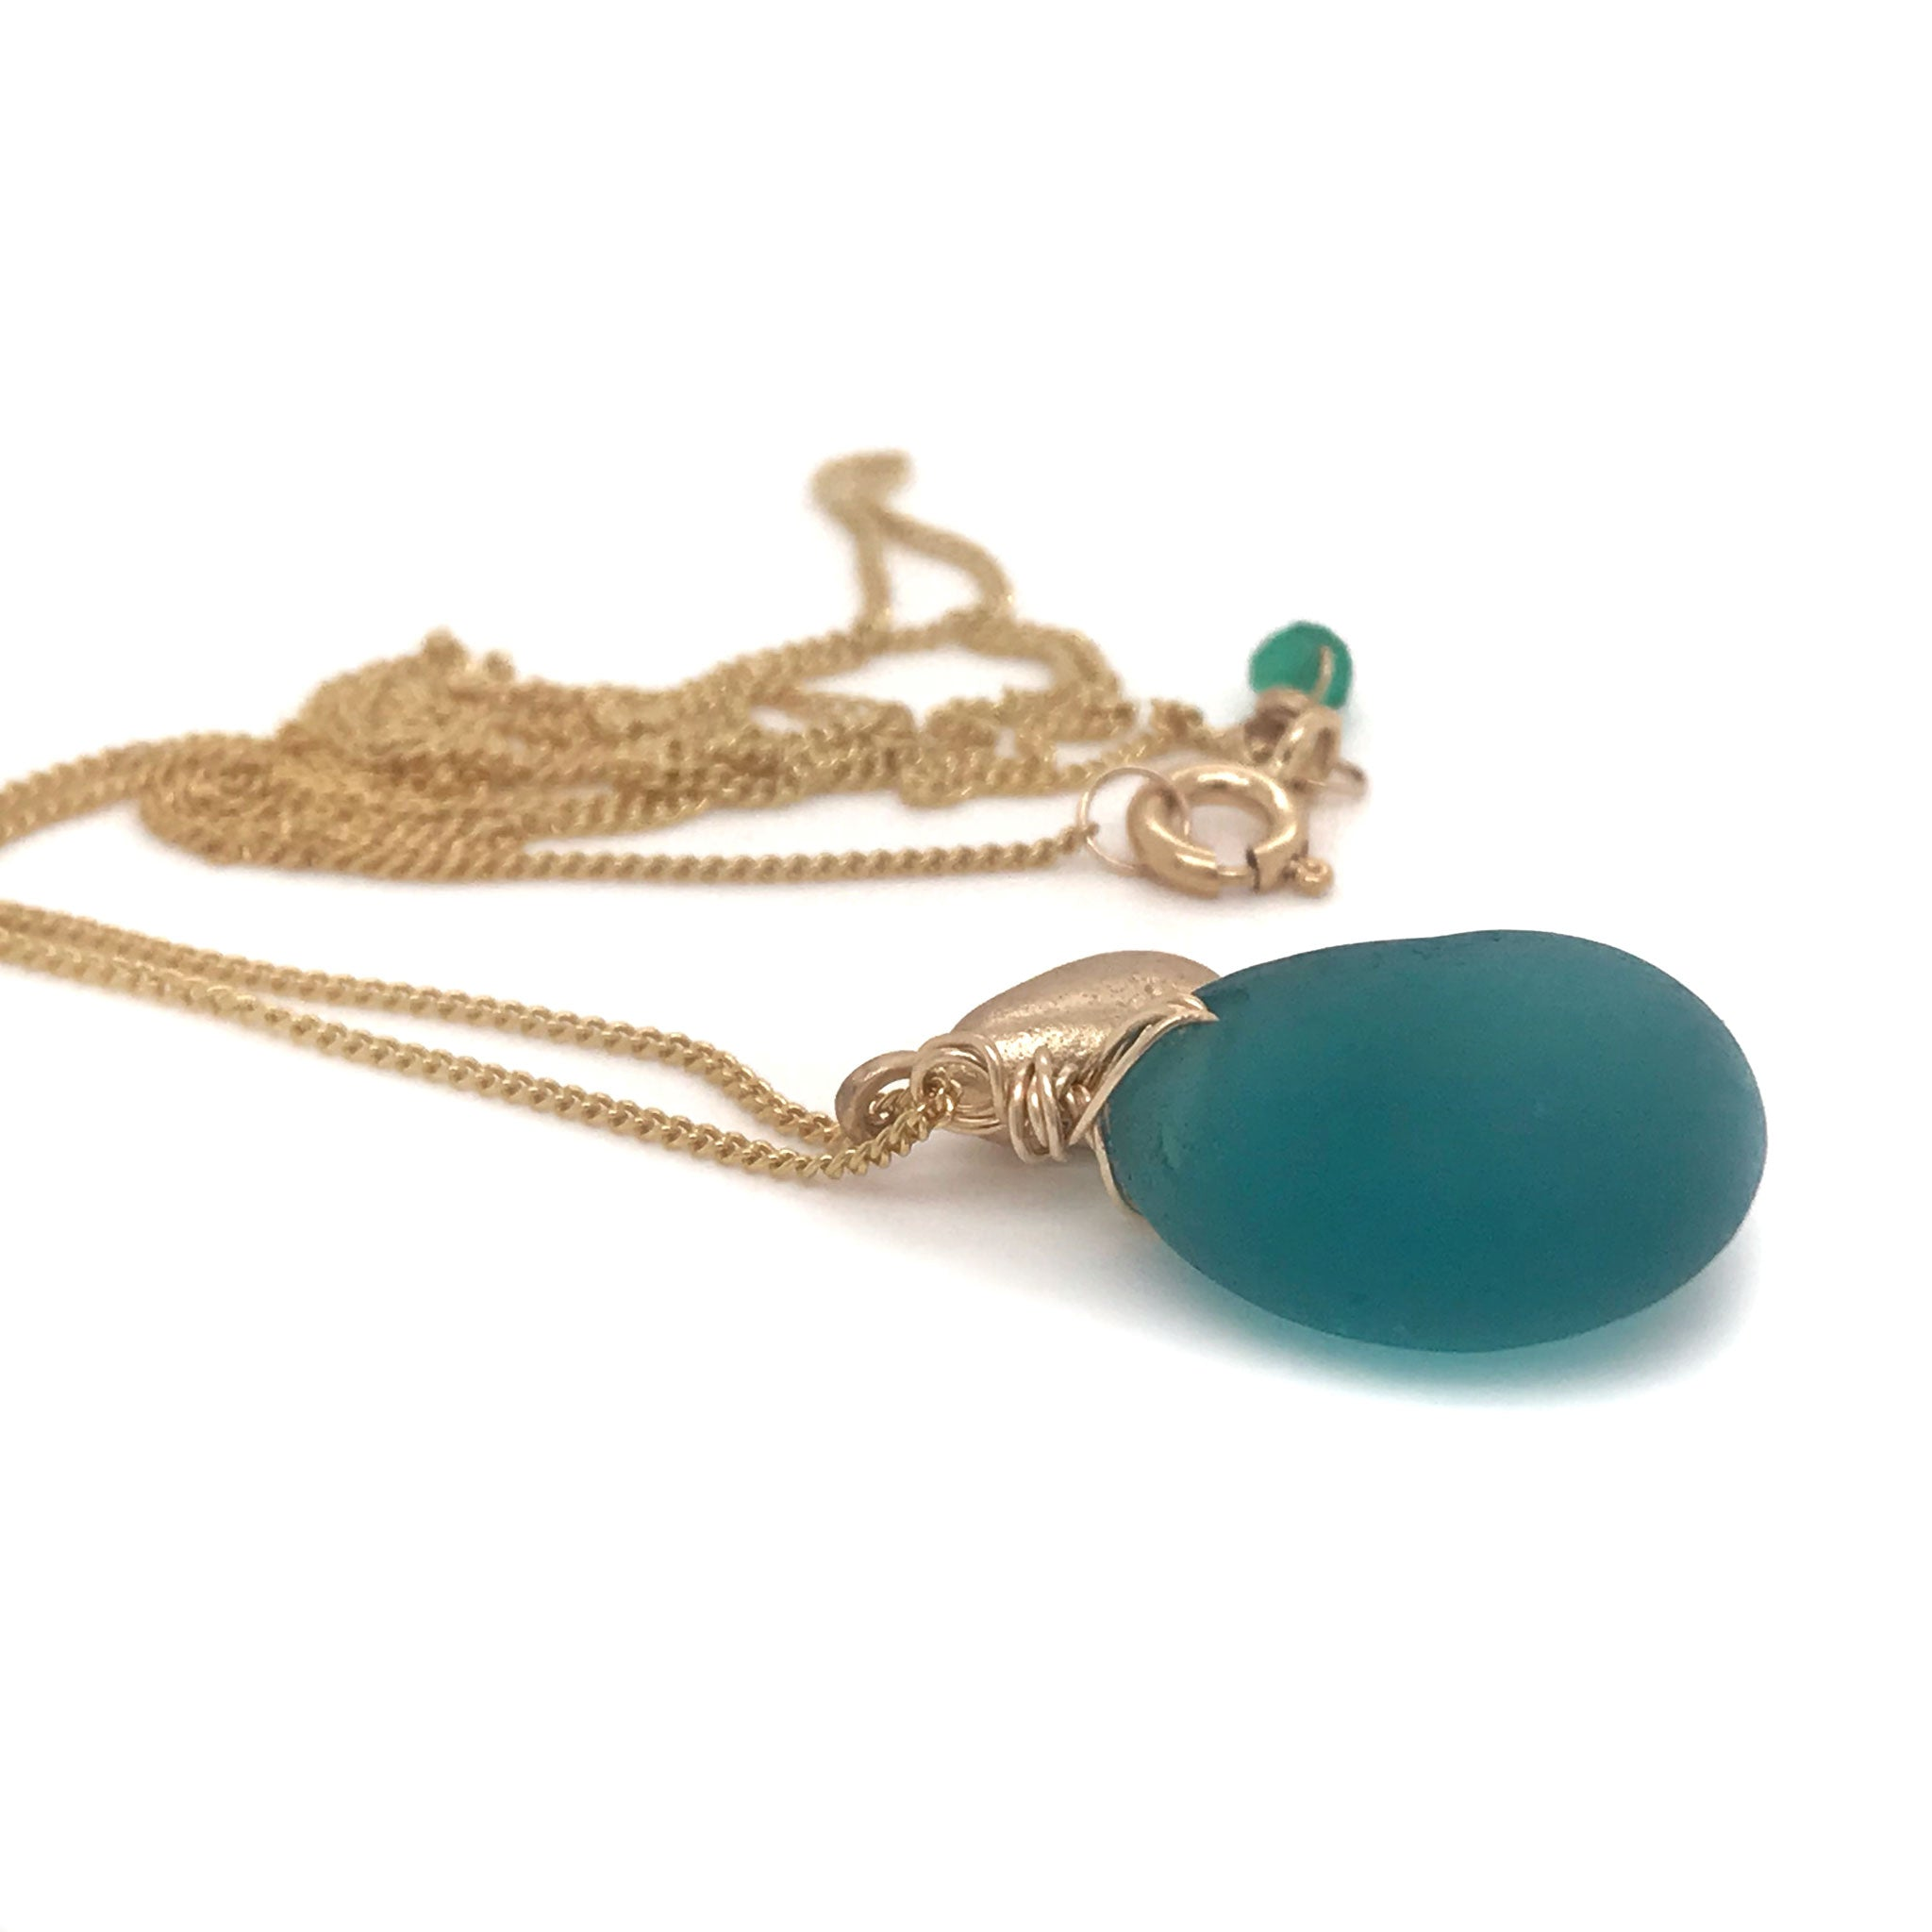 teal seaglass necklace on gold chain with solid 14k gold charm Kriket Broadhurst handcrafted jewellery